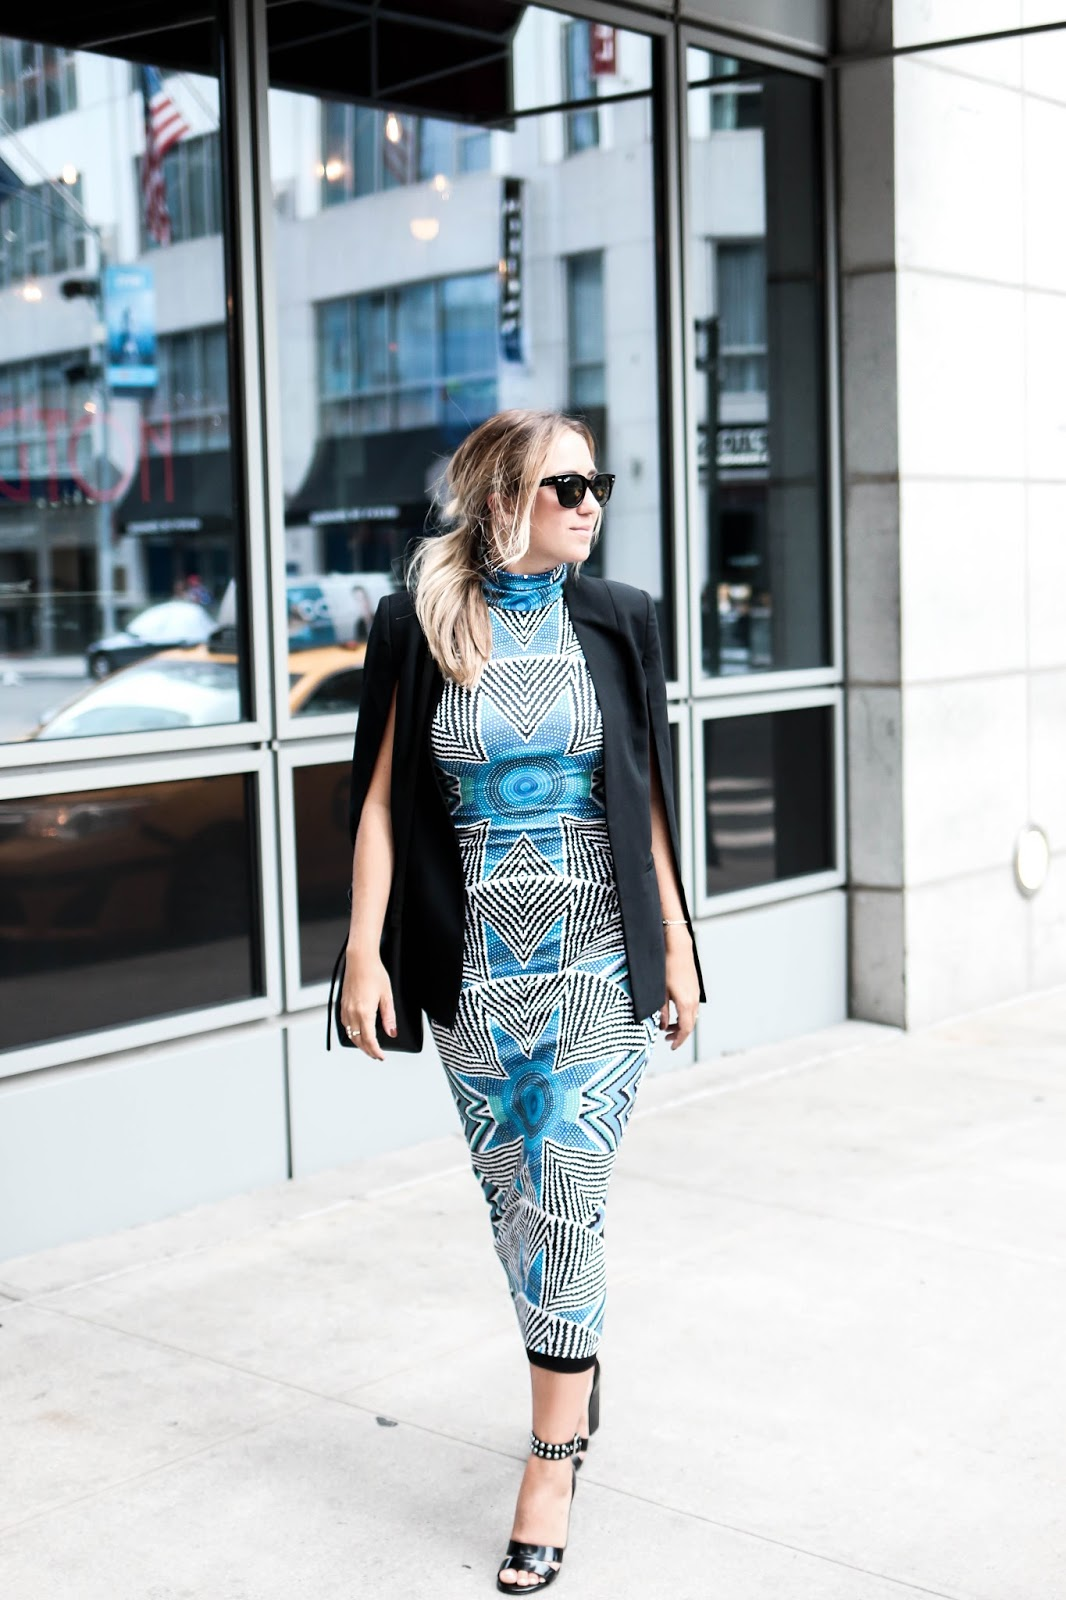 mara hoffman, shopstyle, print, blue, star basket, midi dress, sleeveless, new york, fashion week, street style, ss16, outfit, style, blogger, dc, fashion